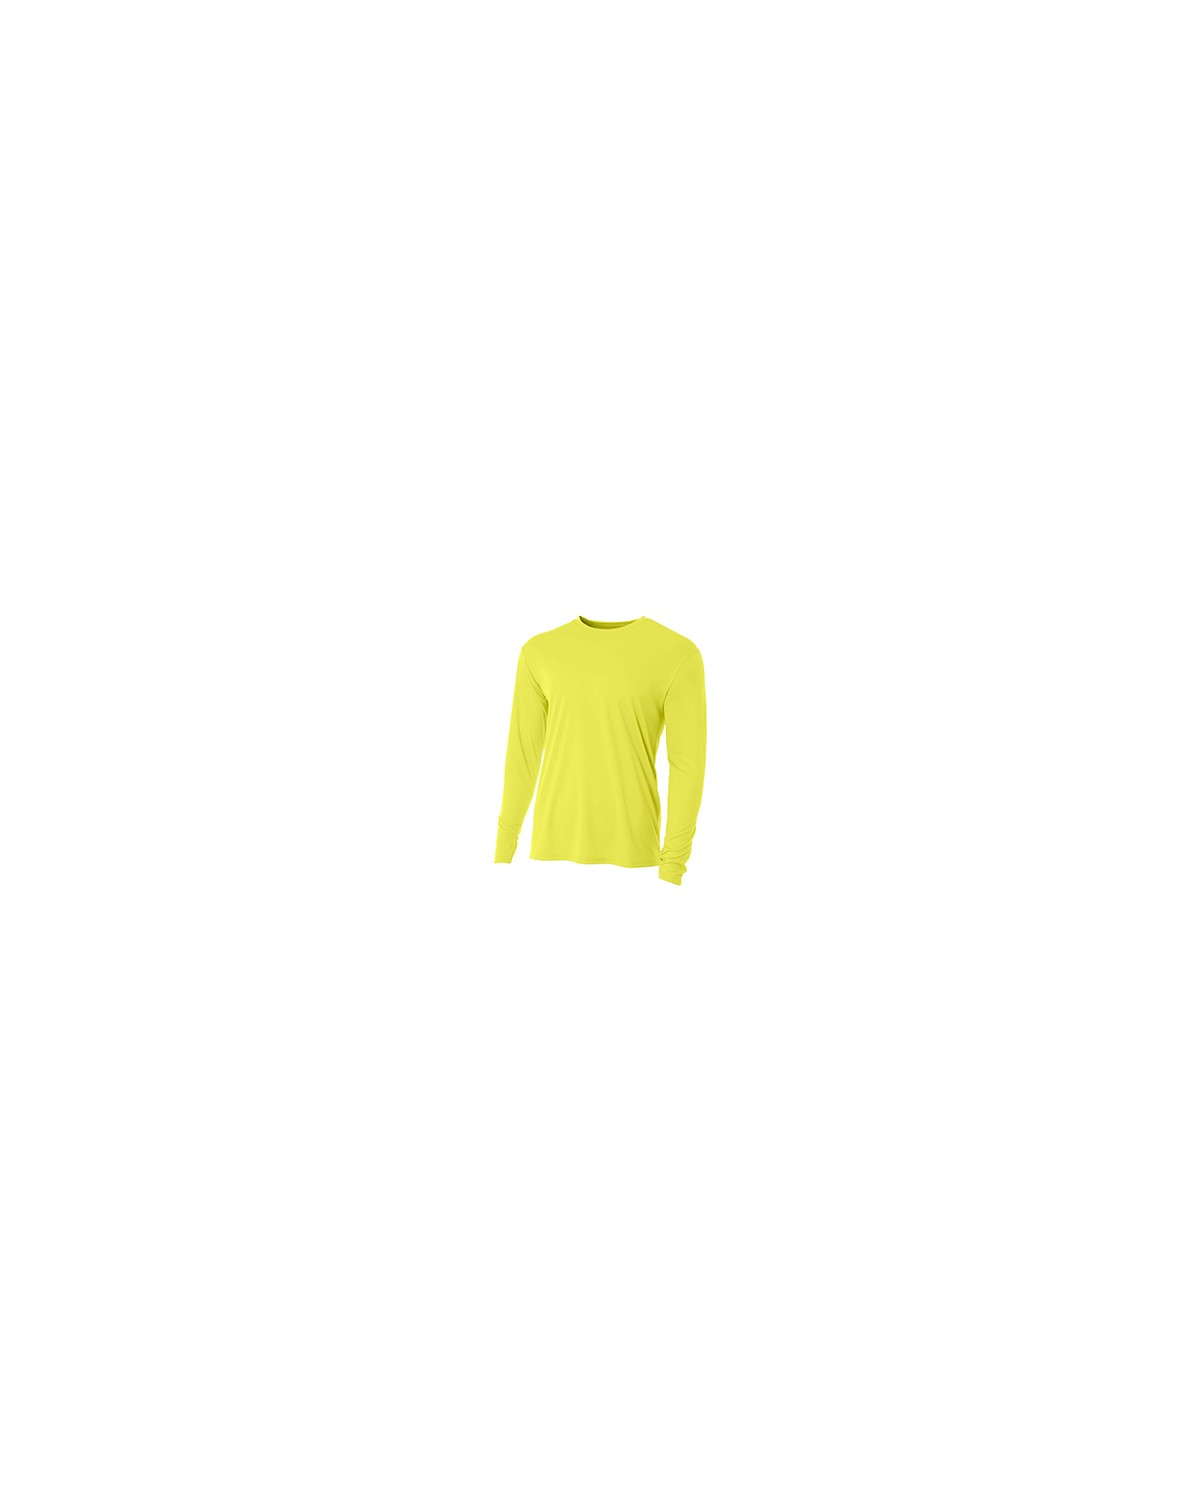 N3165 A4 Apparel SAFETY YELLOW